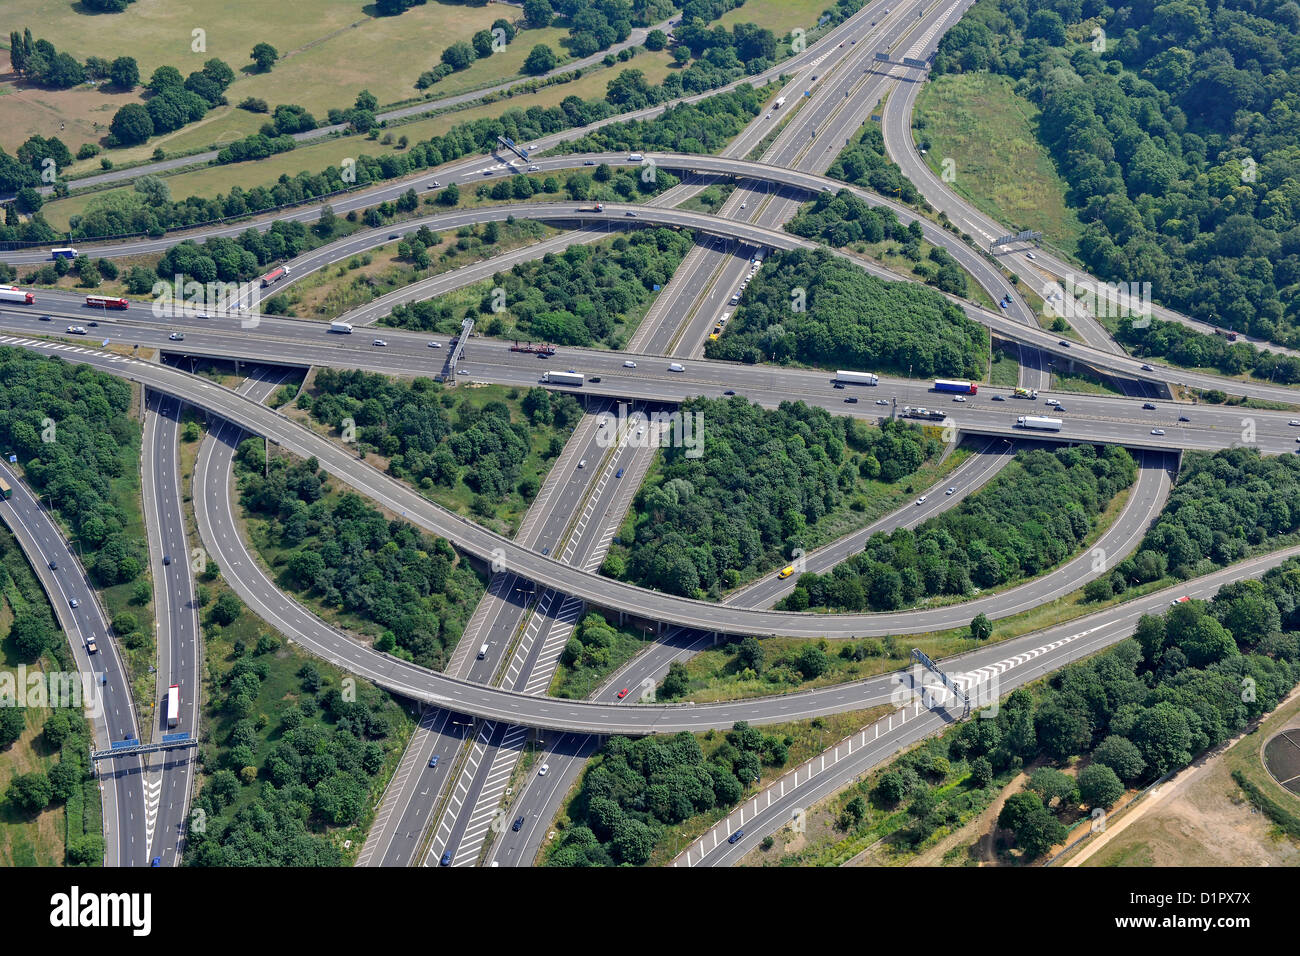 Aerial image of Motorway junction 12 M25 and M3 - Stock Image